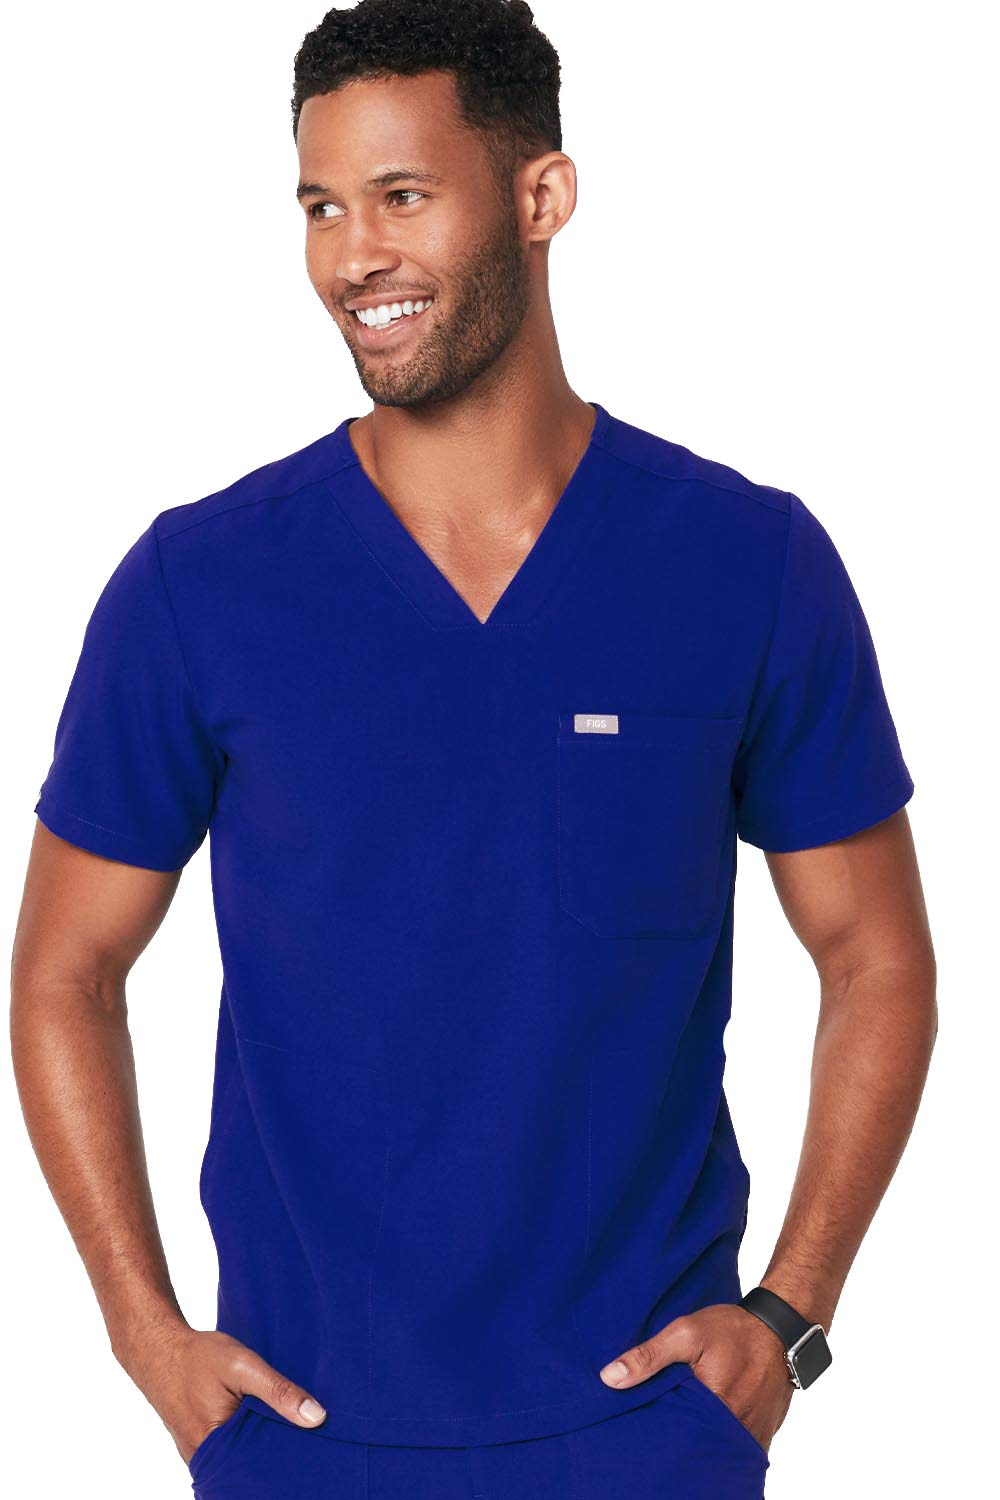 FIGS Medical Scrubs Men's Chisec Three Pocket Top, Deep Royal Blue M